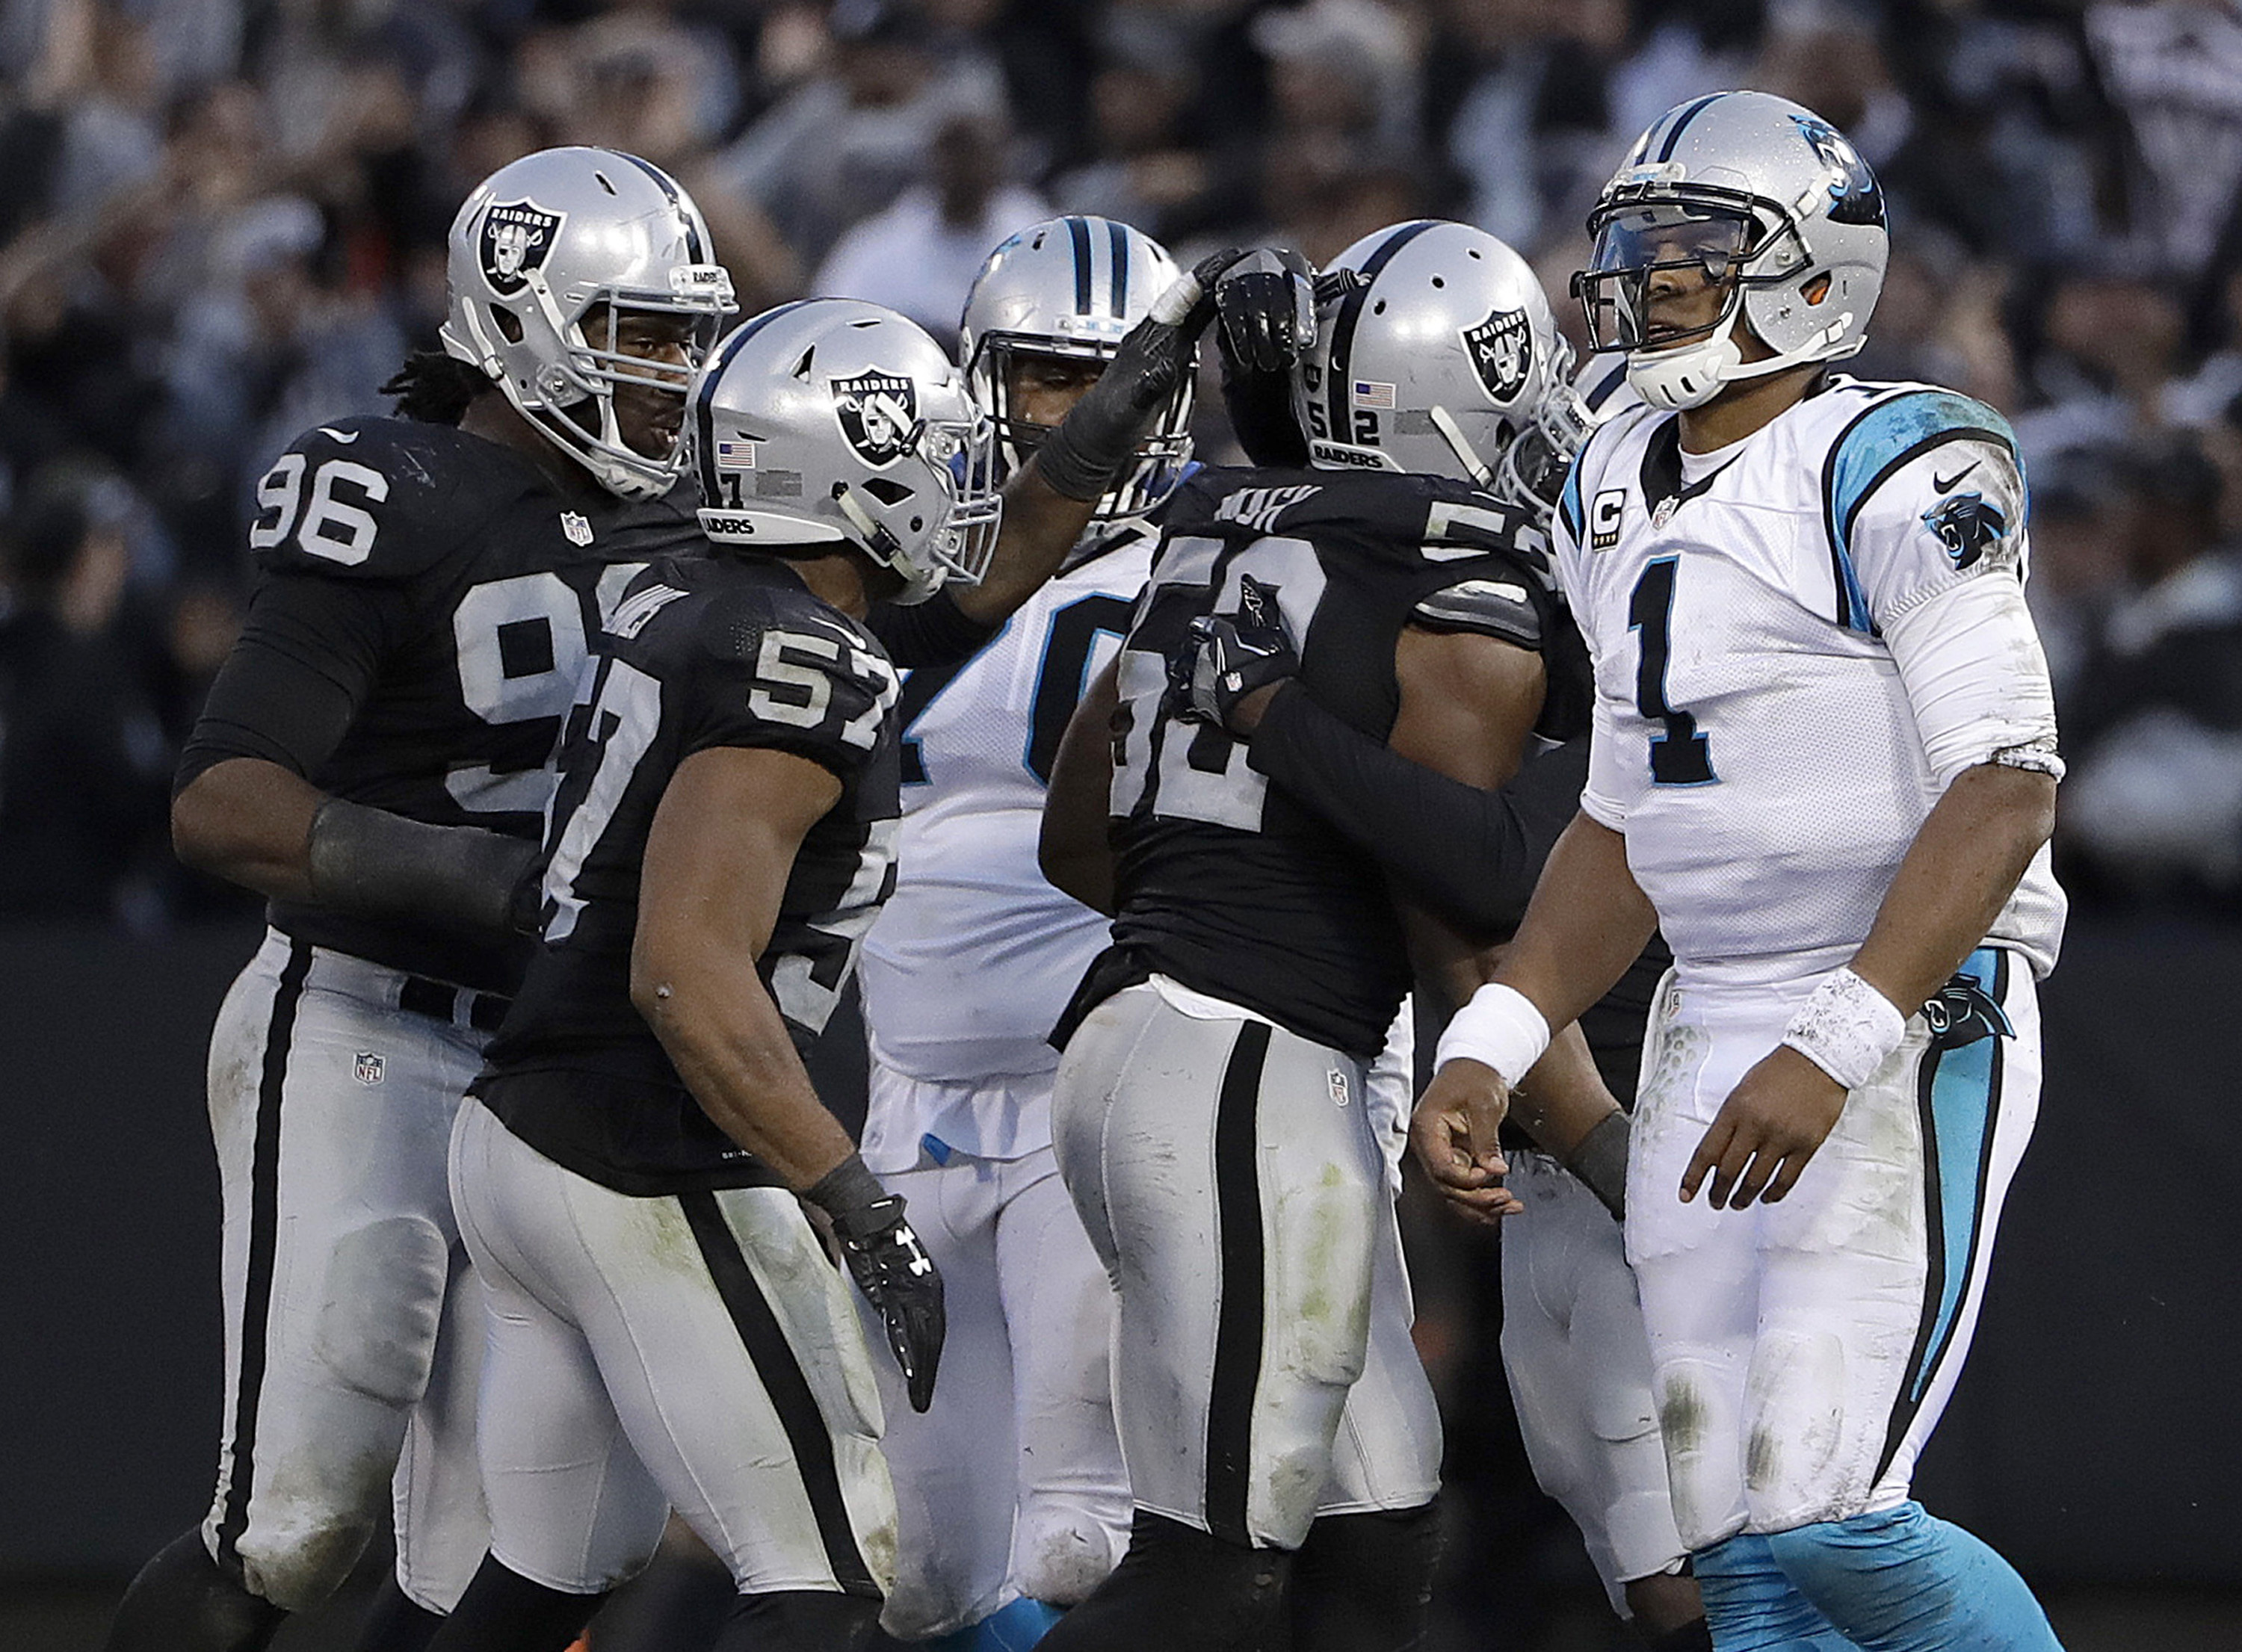 Oakland Raiders defensive end Khalil Mack (52) celebrates with teammates after recovering a fumble by Carolina Panthers quarterback Cam Newton (1) during the second half of an NFL football game in Oakland, Calif., Sunday, Nov. 27, 2016. The Raiders won 35